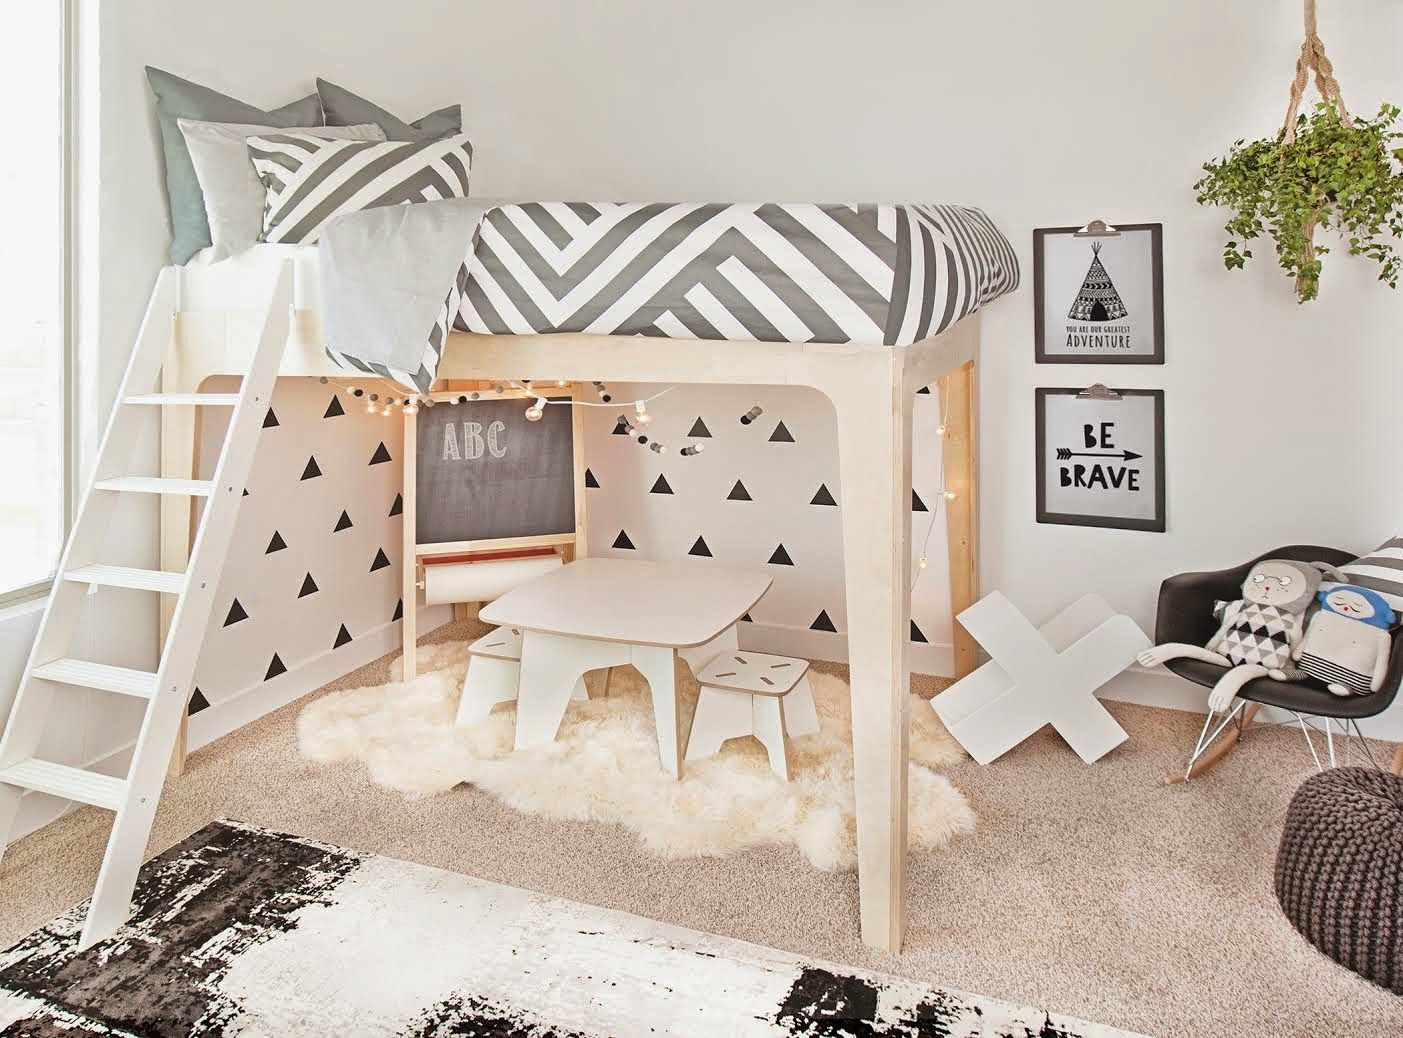 hanes 39 room reveal cara loren kinderzimmer pinterest kinderzimmer kinderzimmer. Black Bedroom Furniture Sets. Home Design Ideas